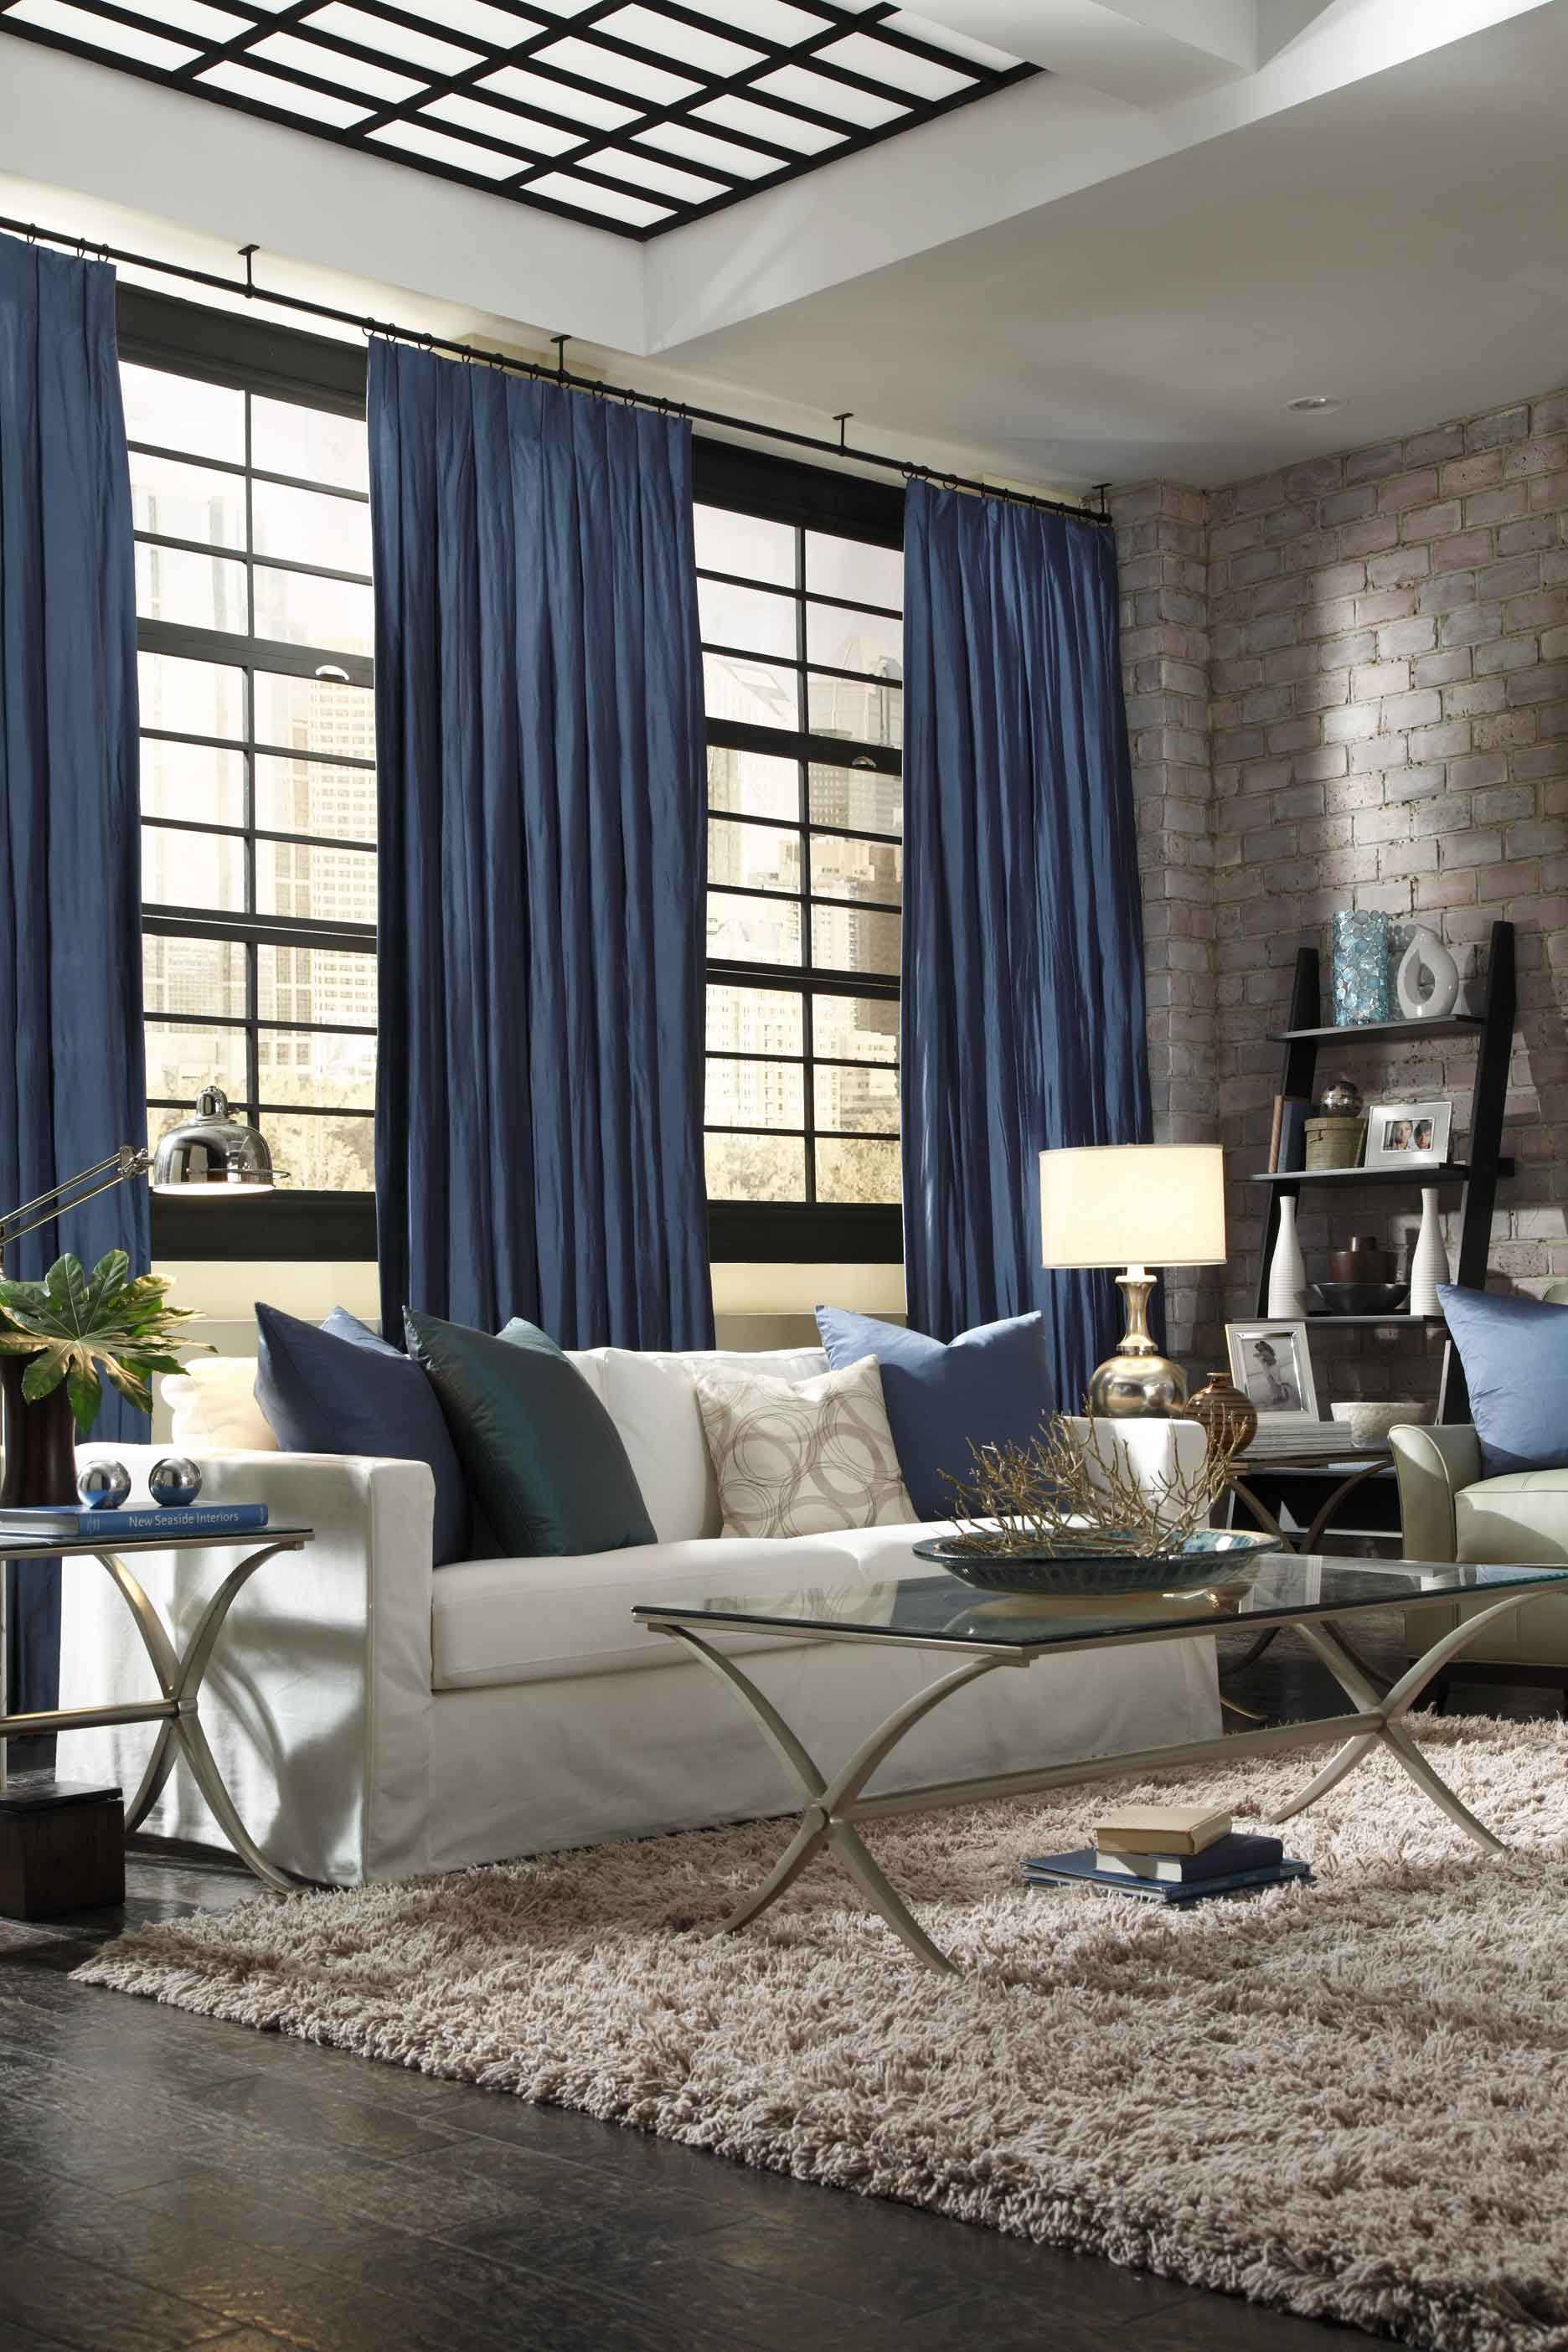 Stunning home decor with blue curtains Basement Ideas